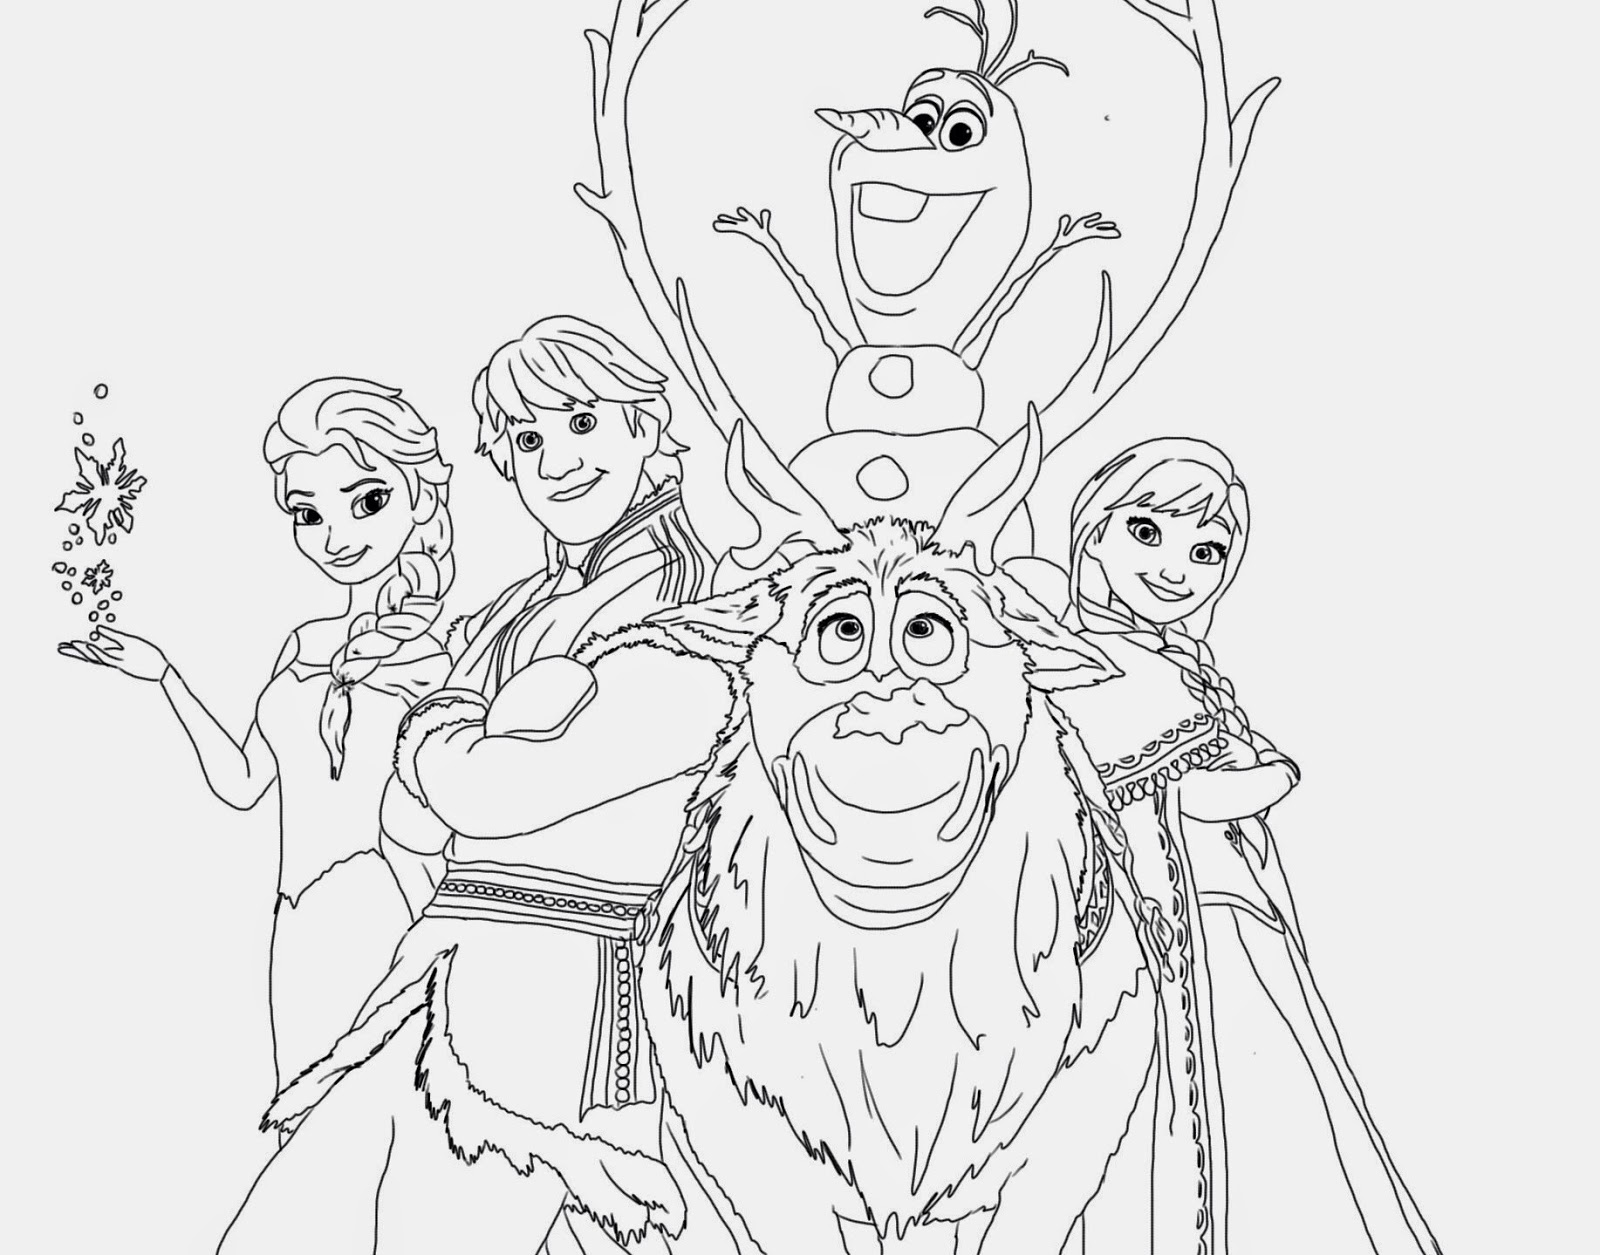 Disney Frozen Coloring Pages Printable Instant Knowledge Frozen Coloring Pages Printable